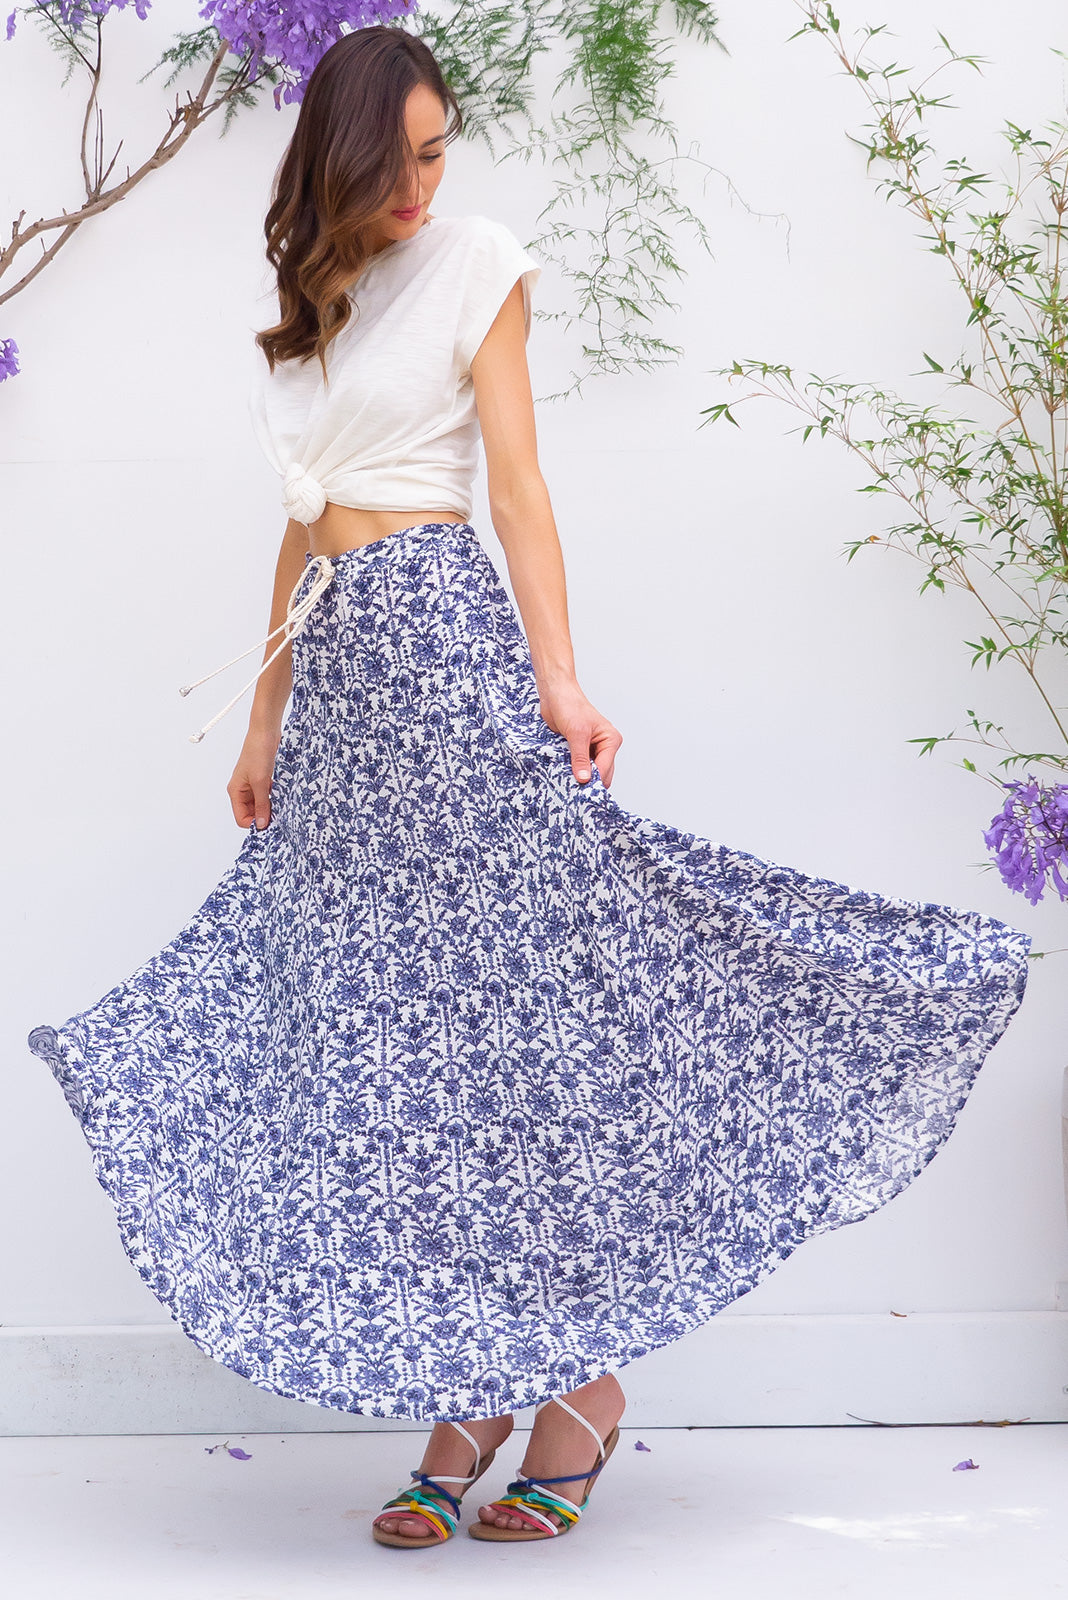 Sahara Skirt Corfu Blue bohemian inspired maxi skirt in a crinkle textured on a bright white and blue printed rayon